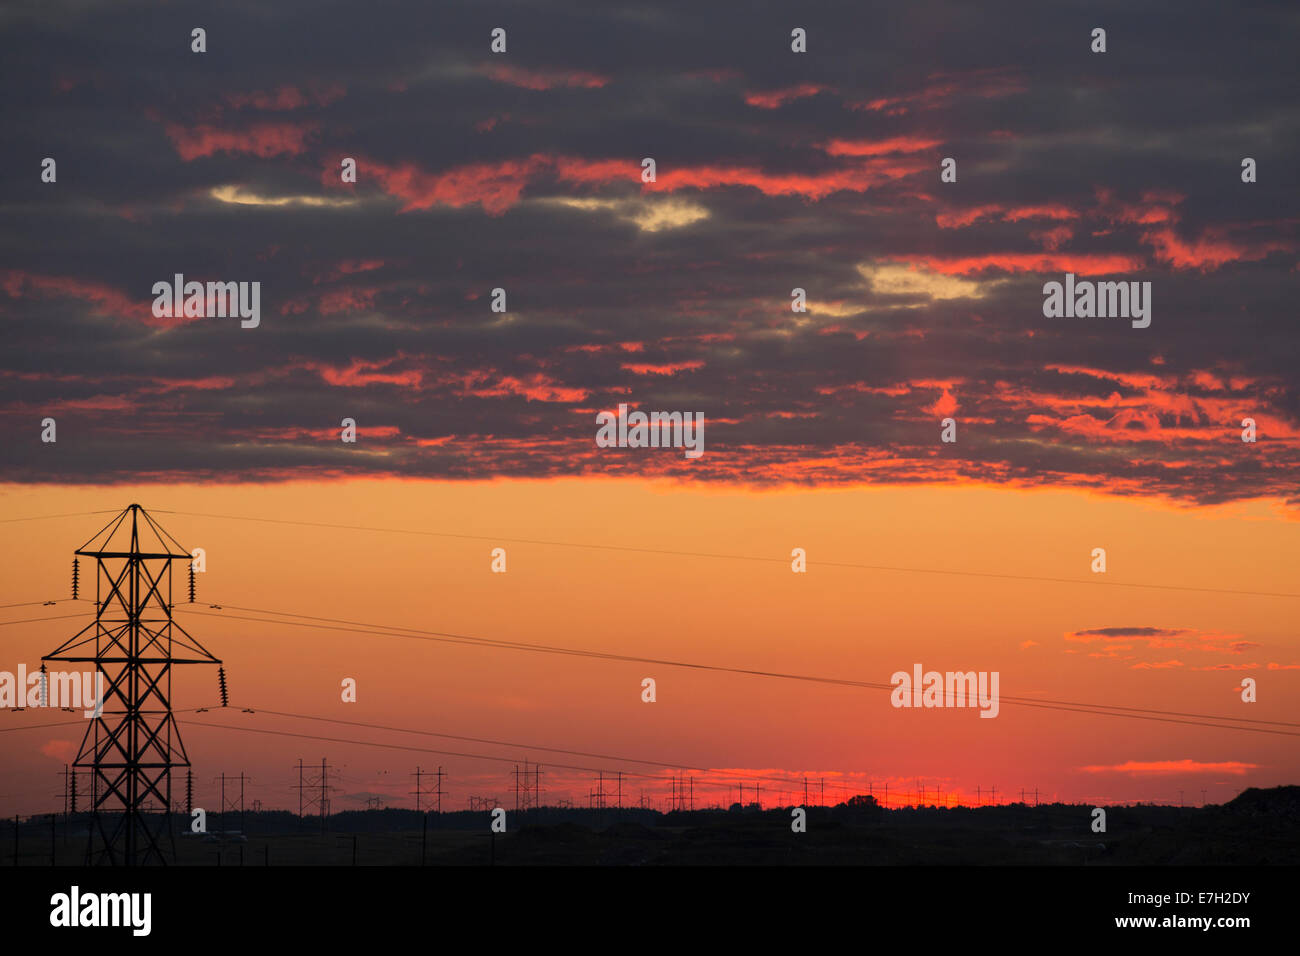 Transmission towers - Stock Image